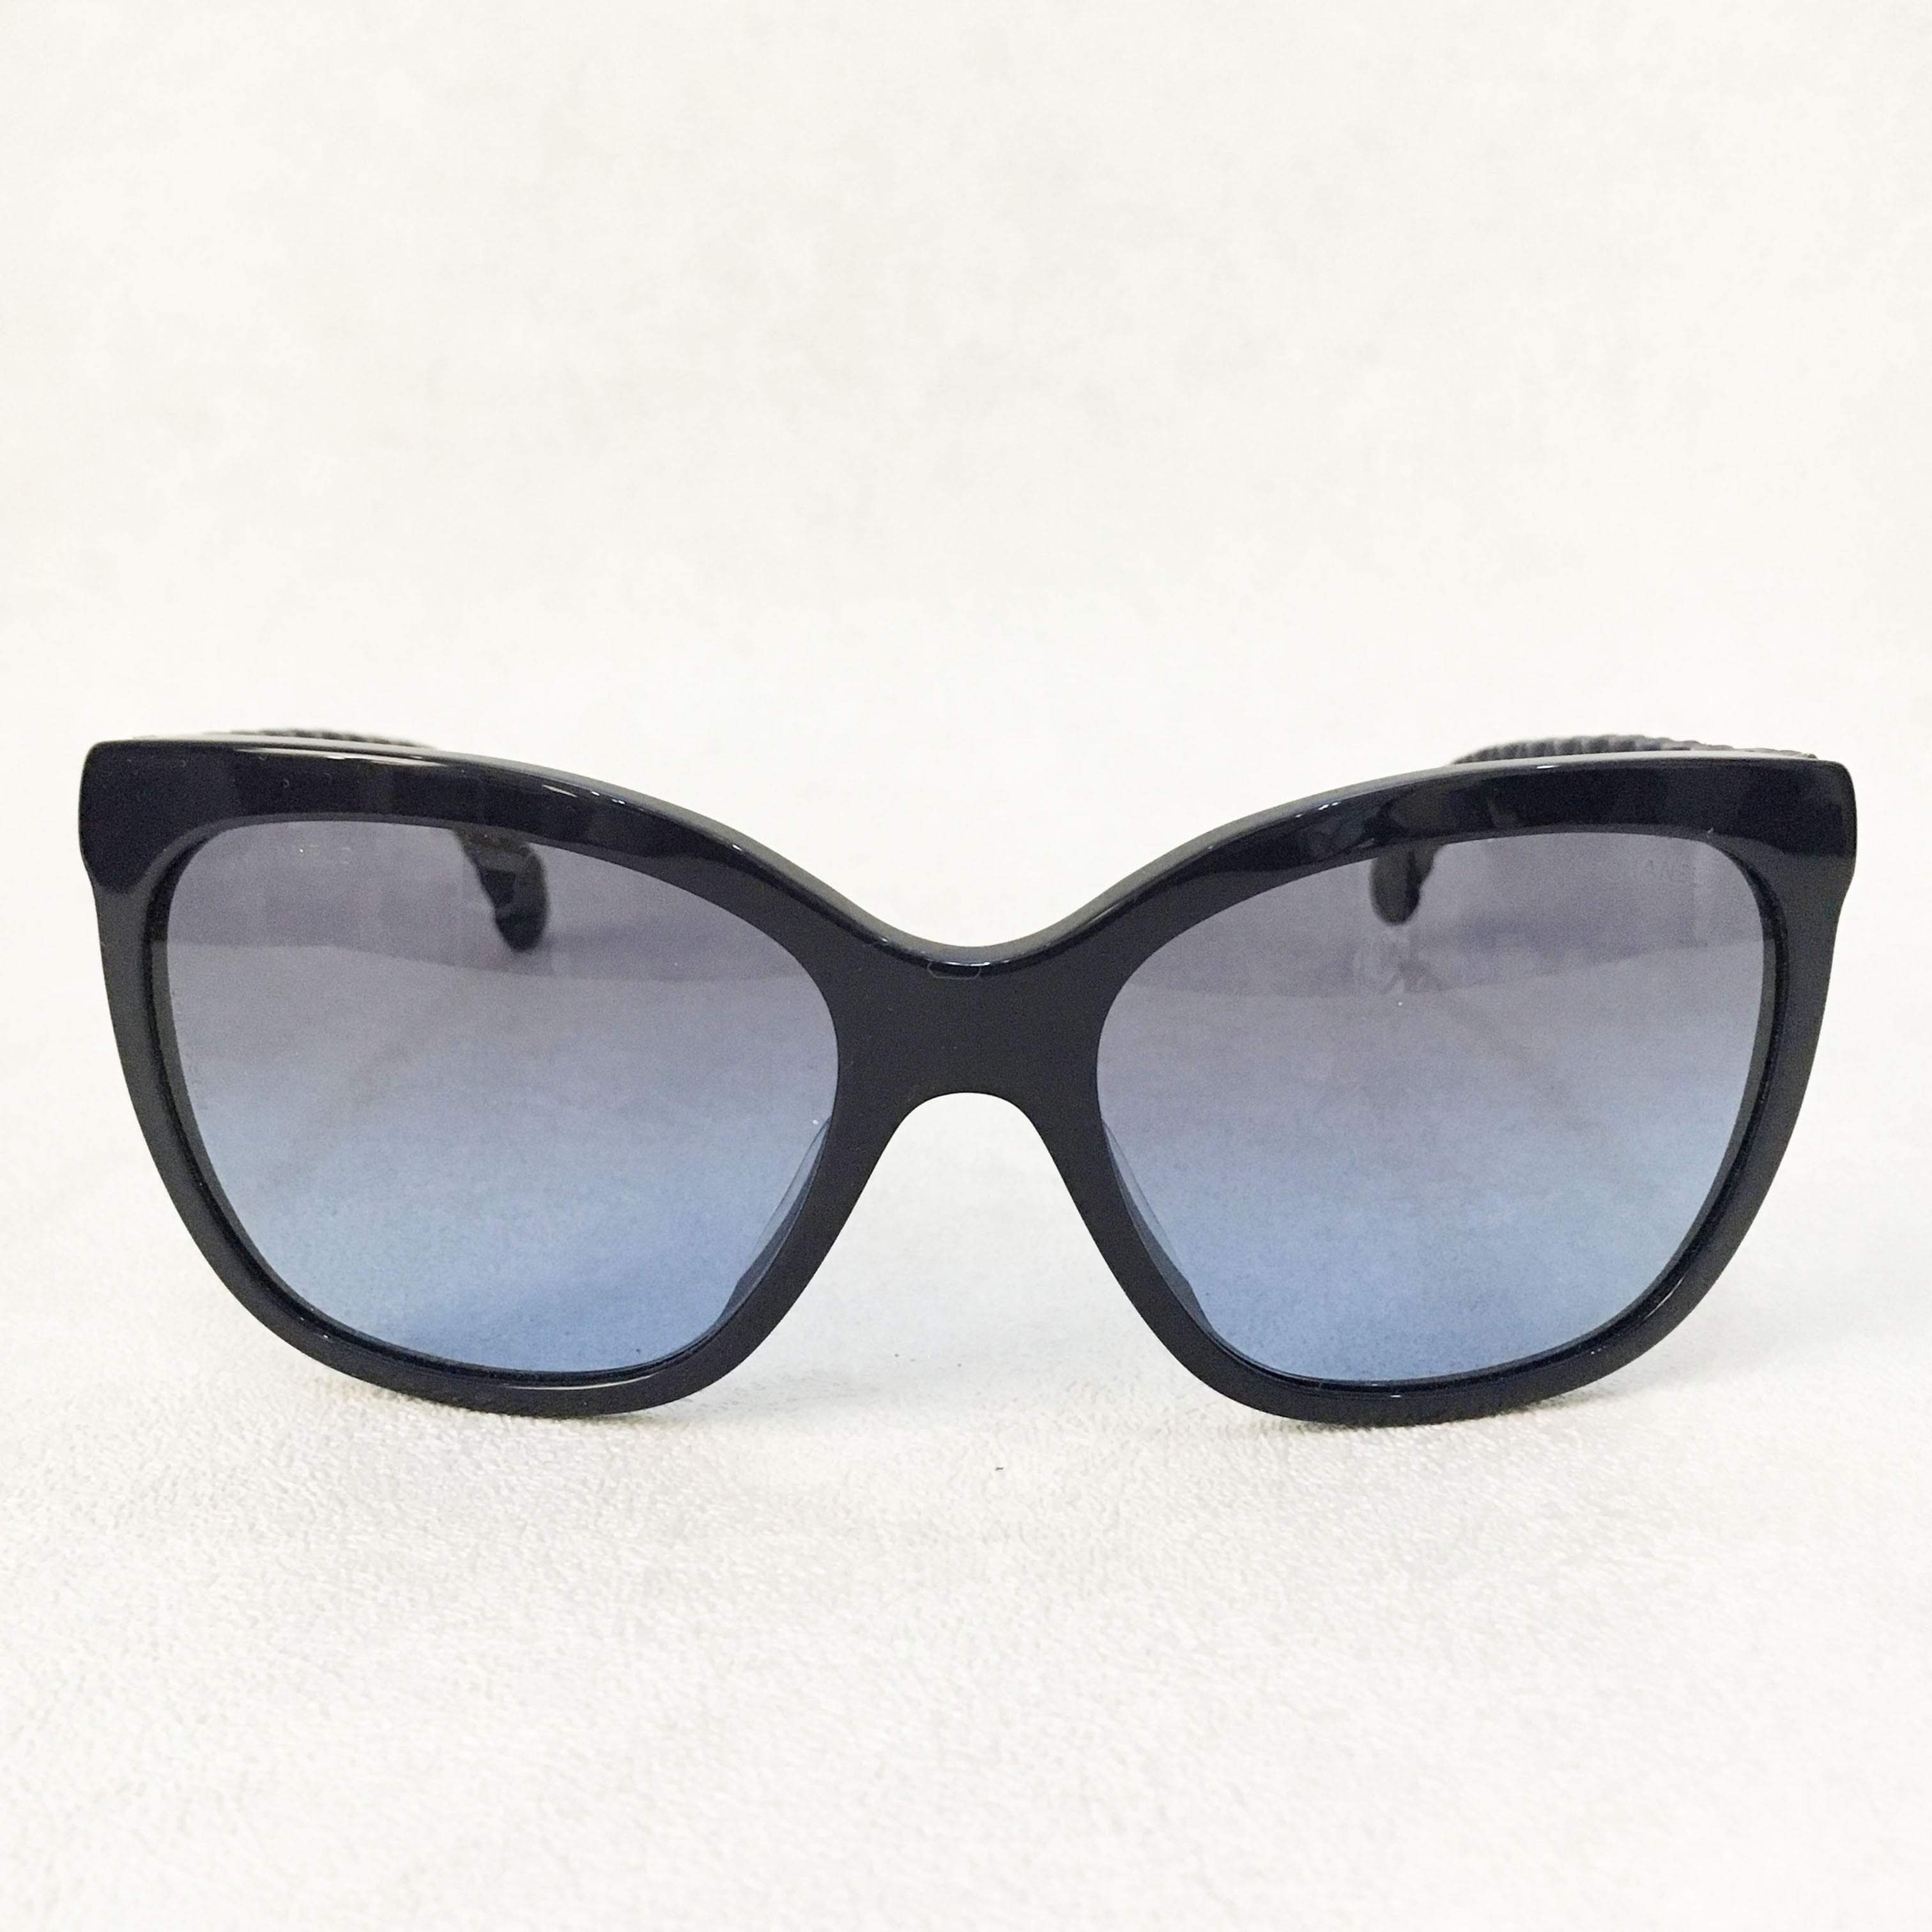 a169dd323620 Chanel sunglasses with leather arms garderobe jpg 3024x3024 Discount chanel  sunglasses for women